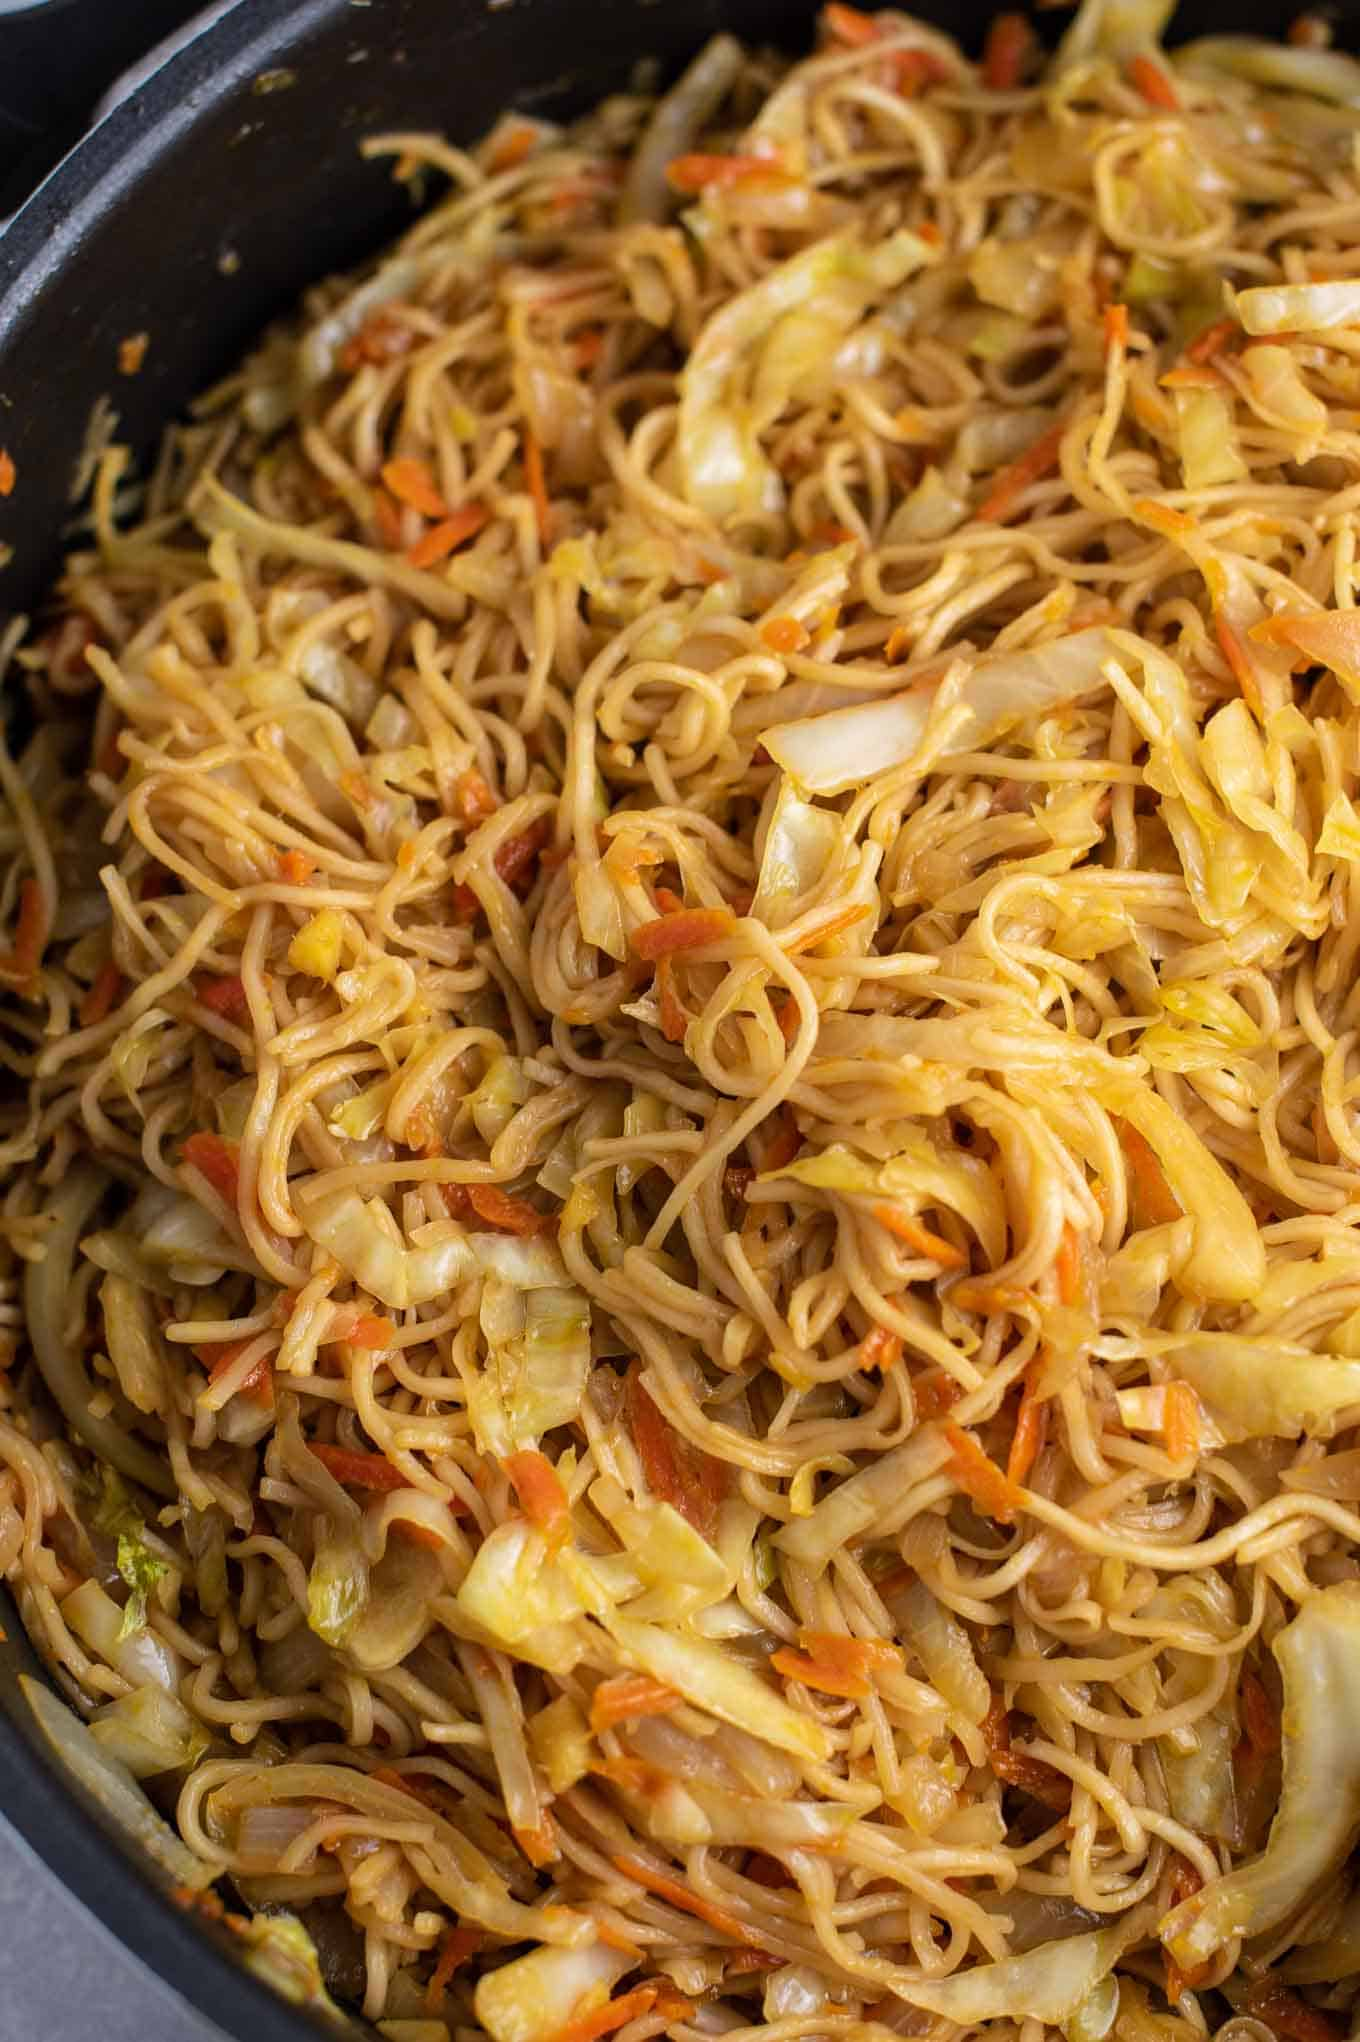 stir fried cabbage and noodles